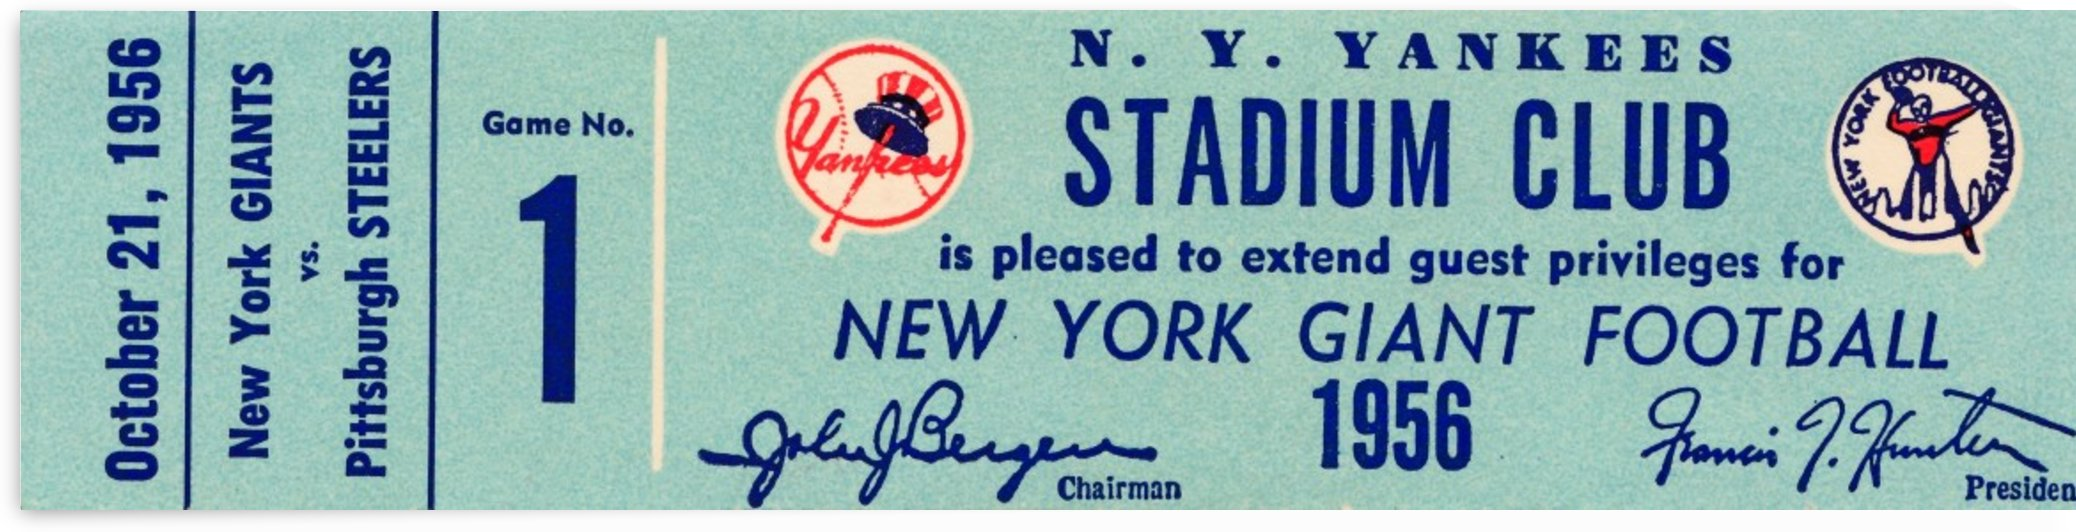 1956 new york giants football ticket stub reproduction print by Row One Brand